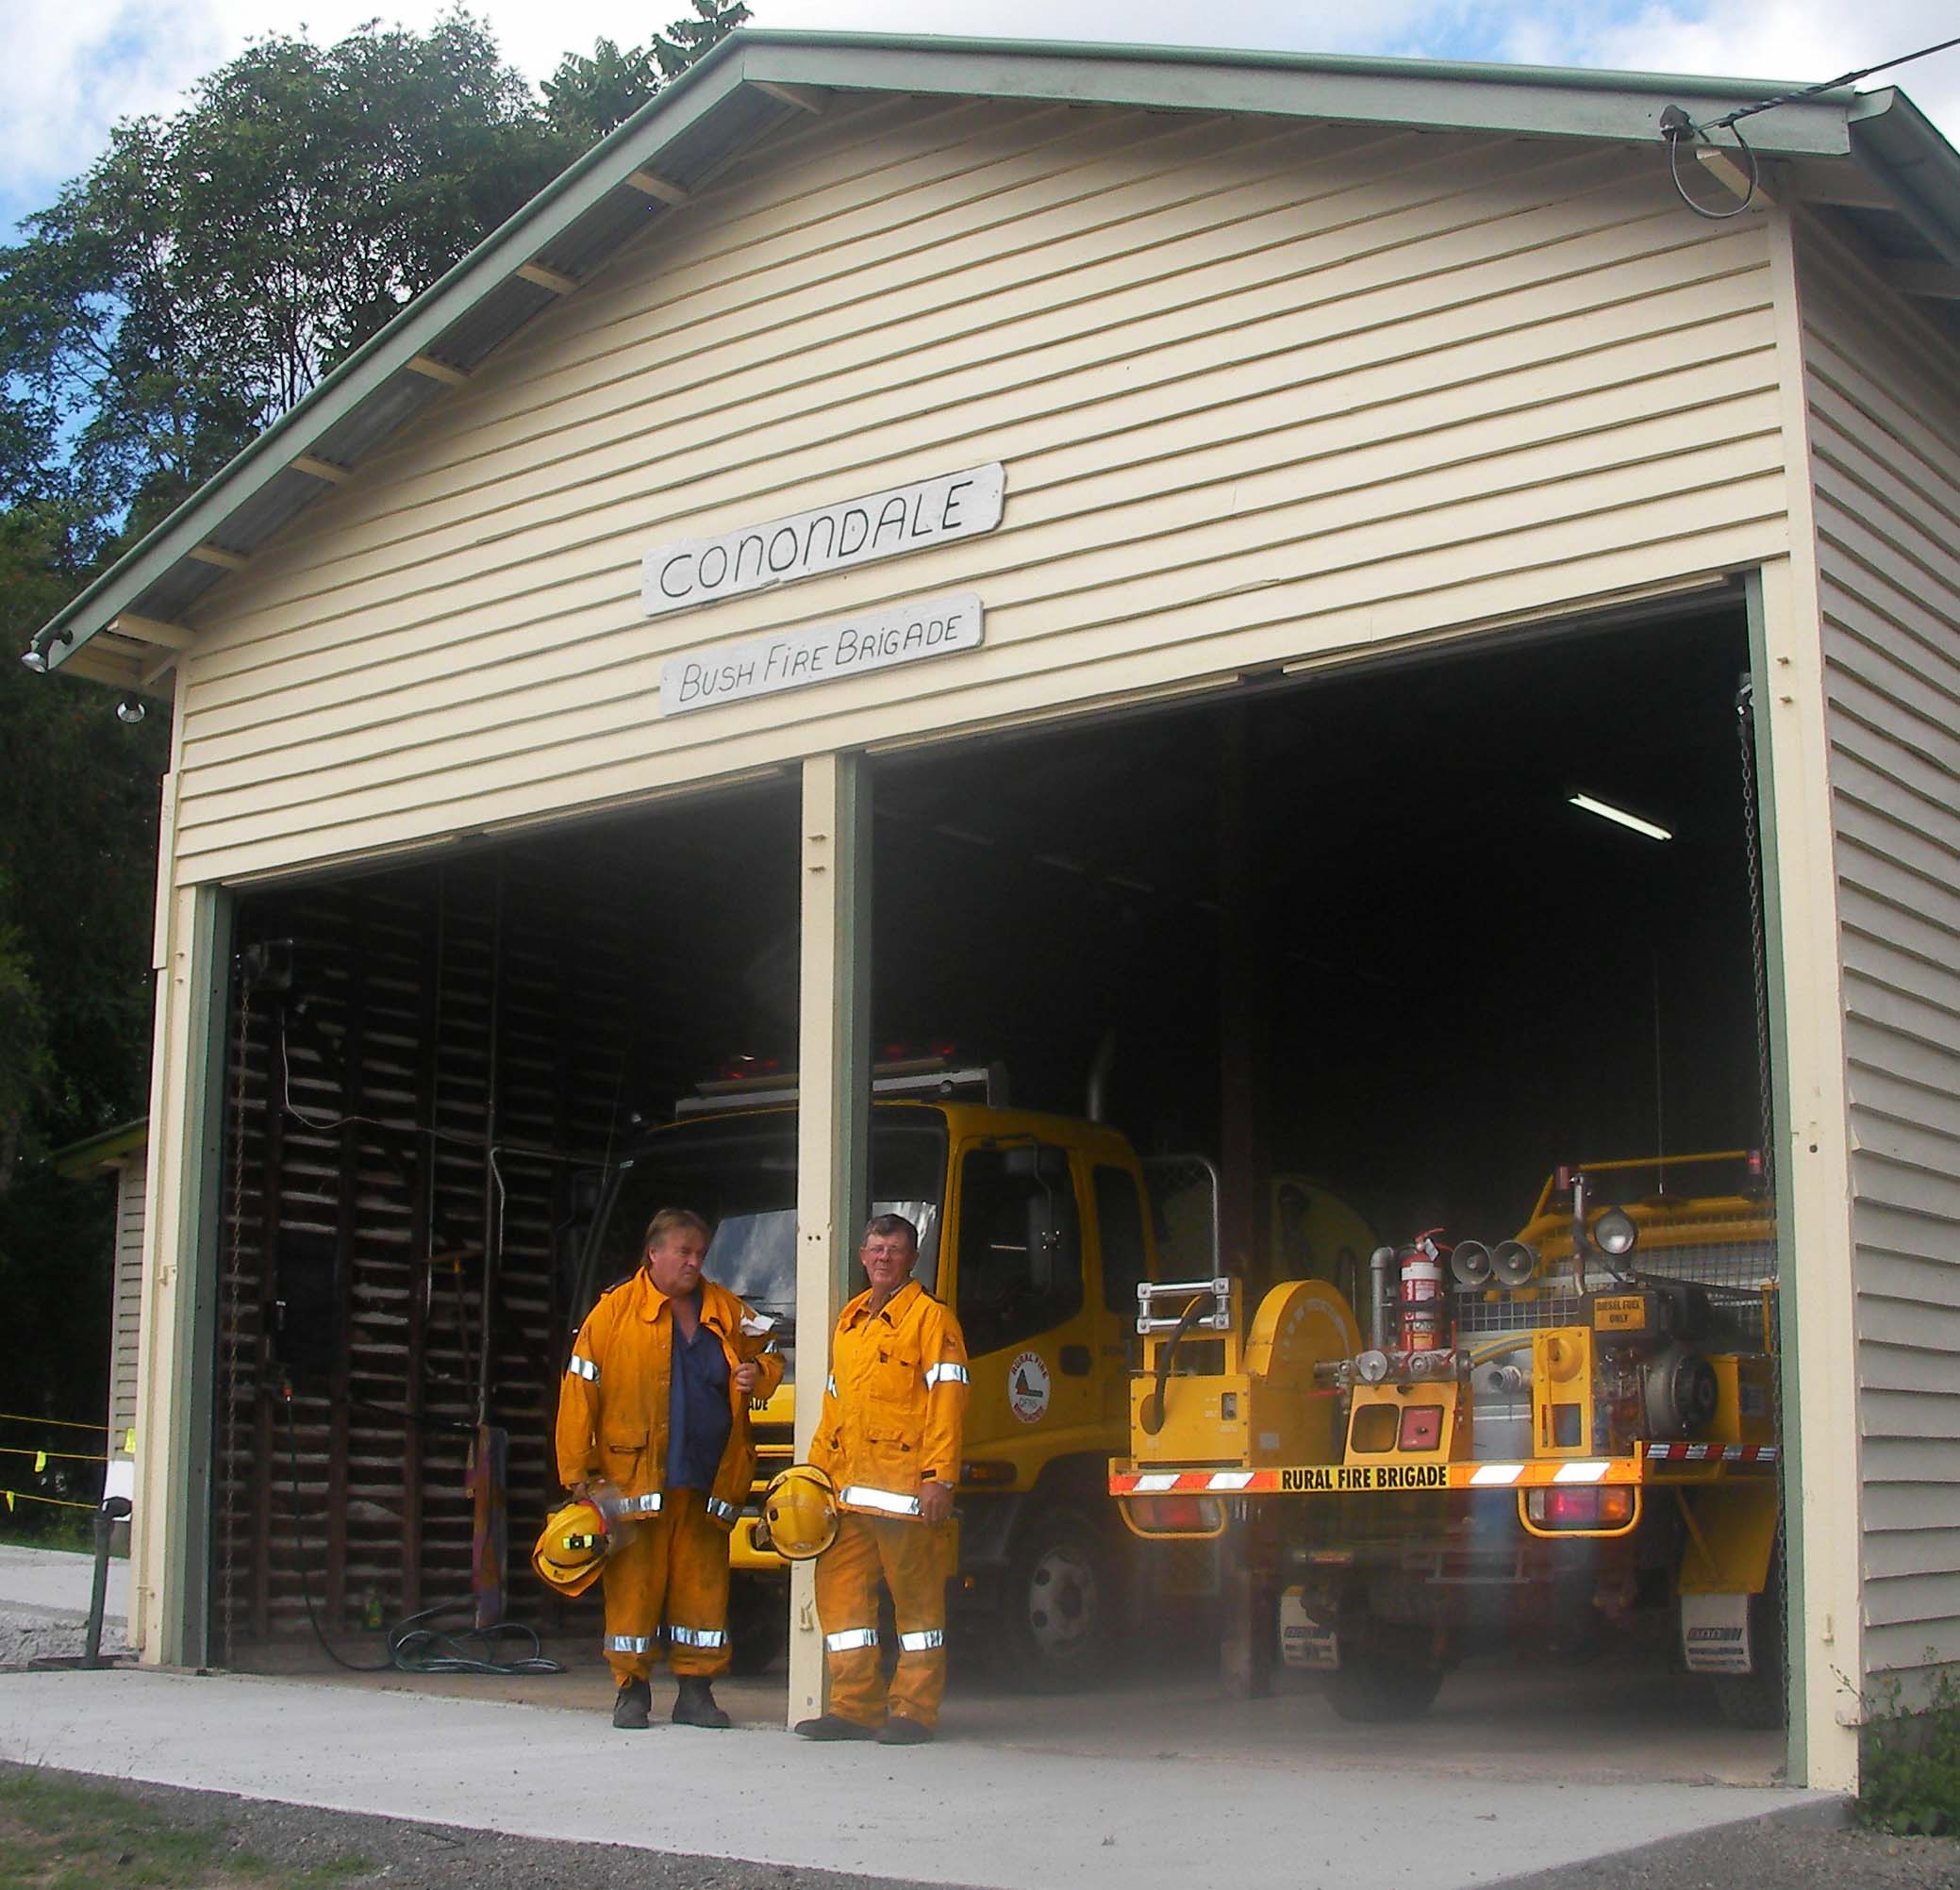 Conondale-Rural-Fire-Brigade-ps_cropped_lowres.jpg